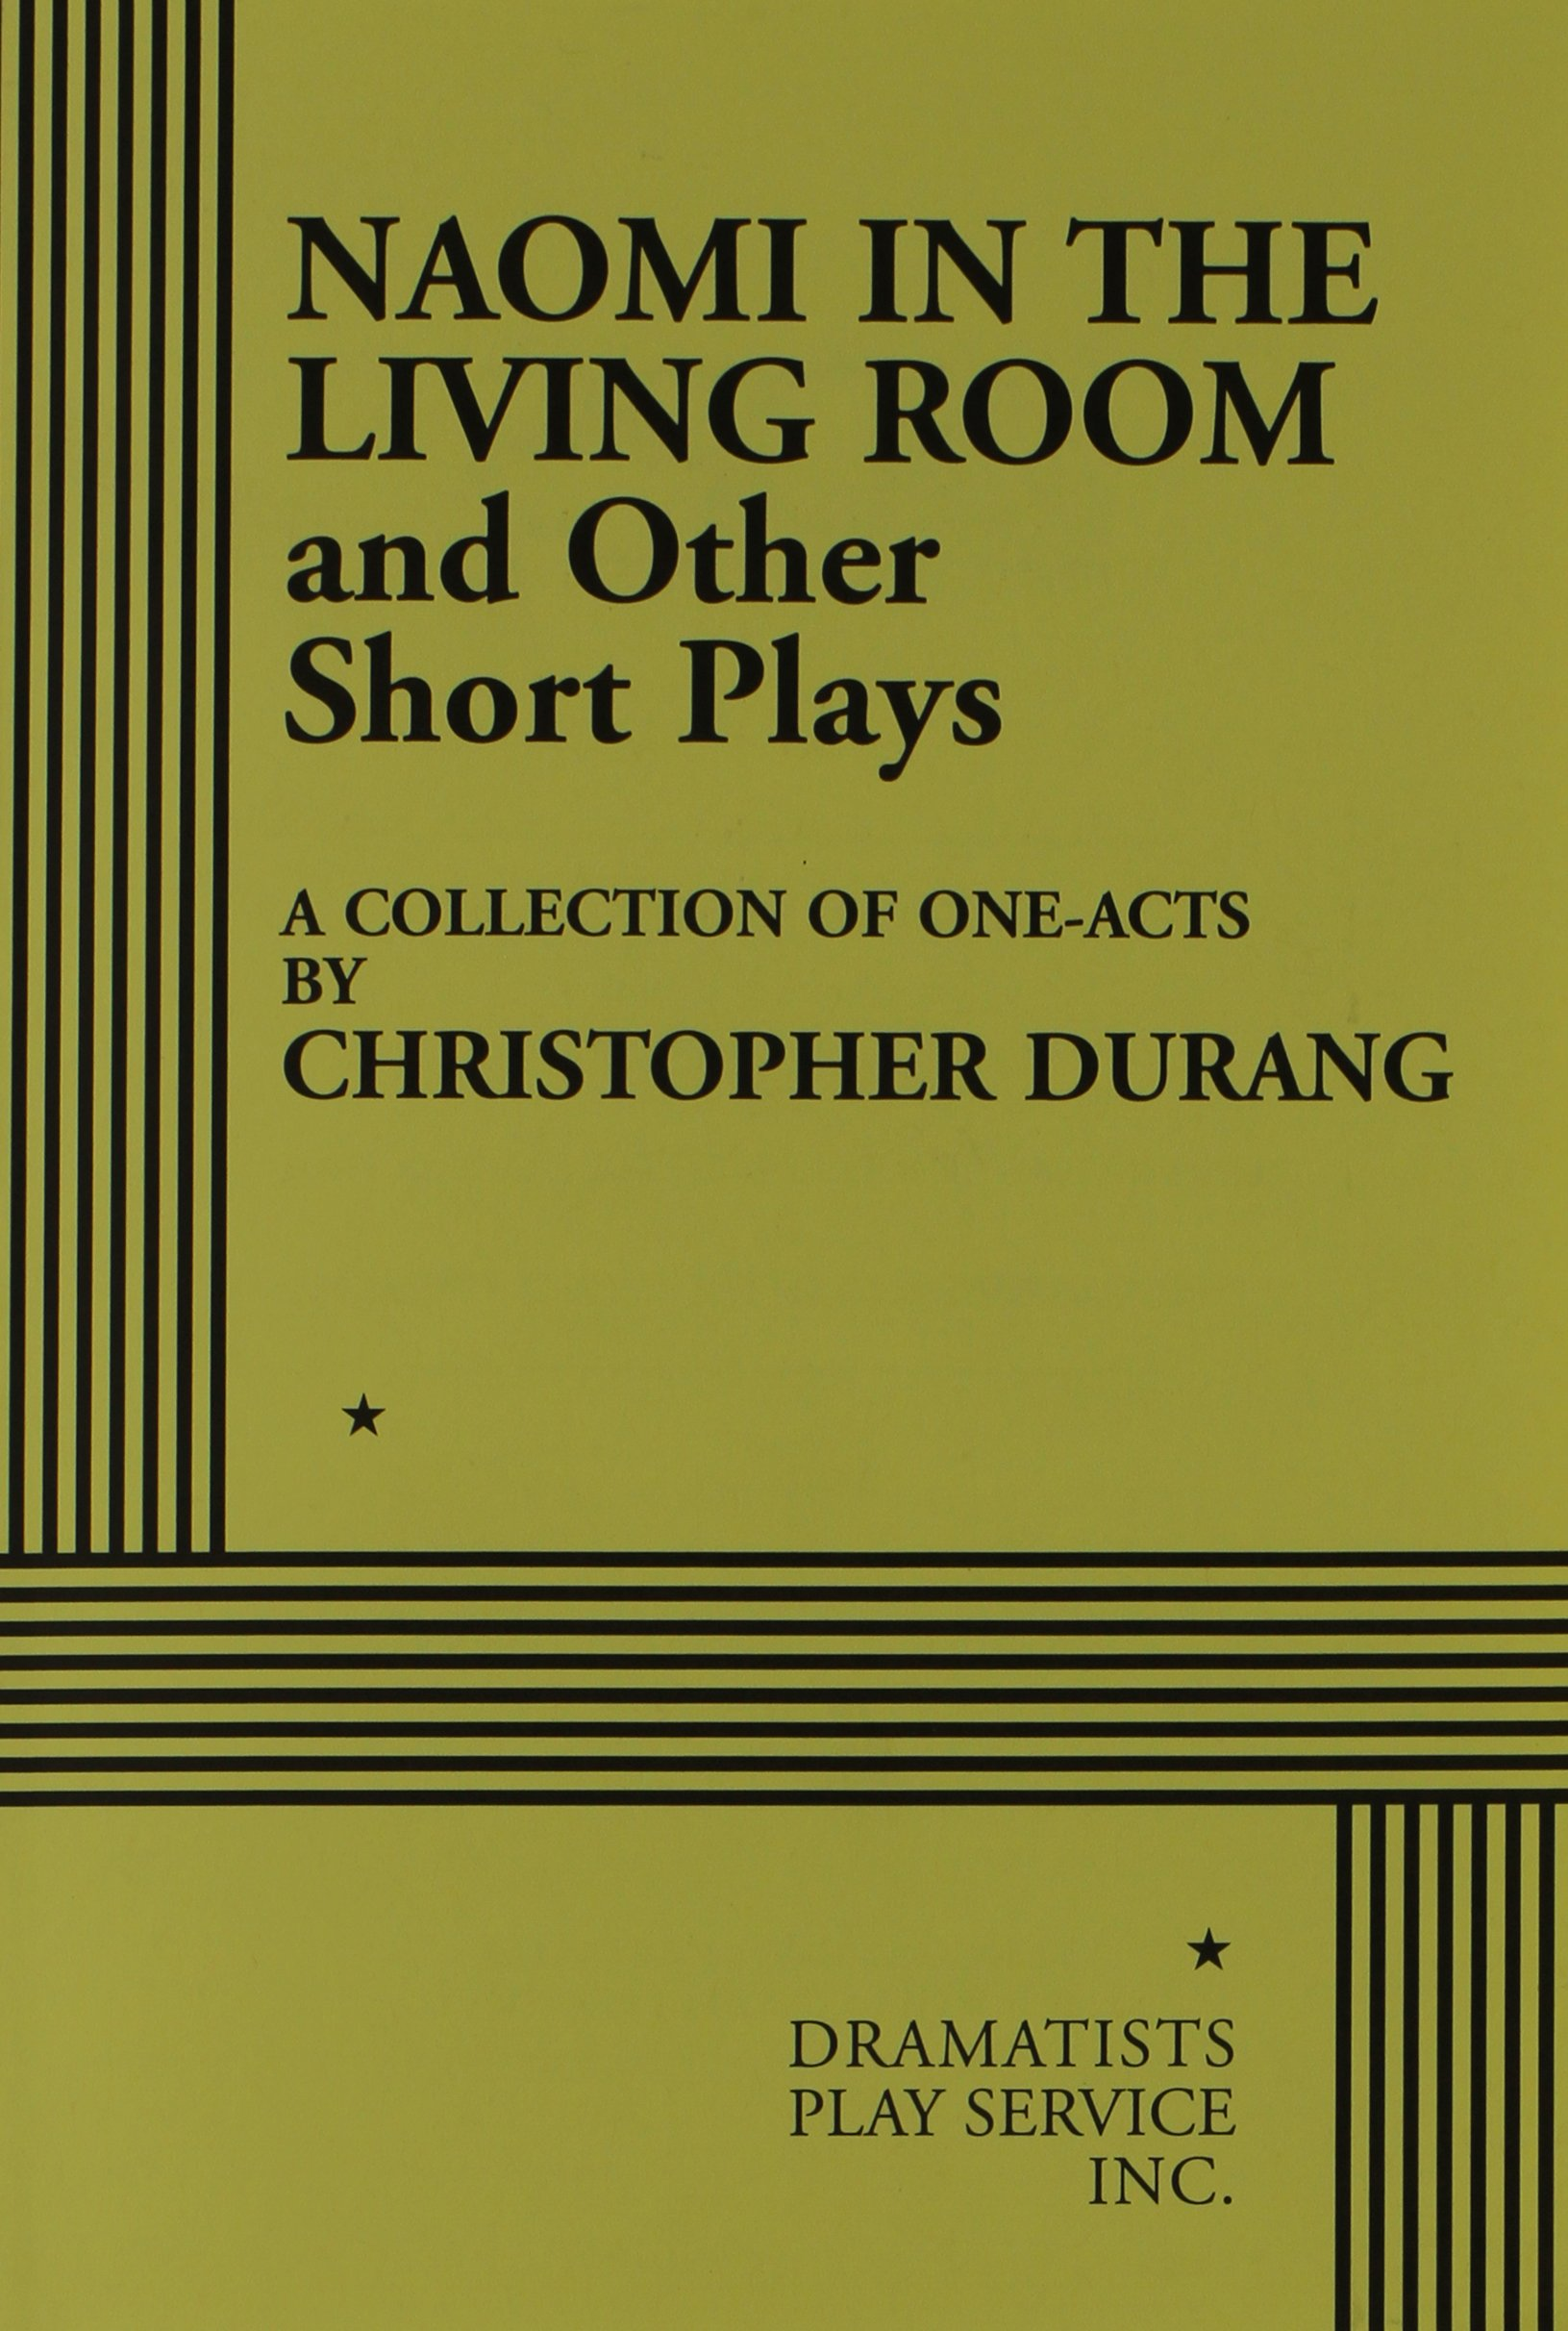 Naomi In The Living Room And Other Short Plays: A Collection Of One Acts:  Christopher Durang: 9780822214489: Amazon.com: Books